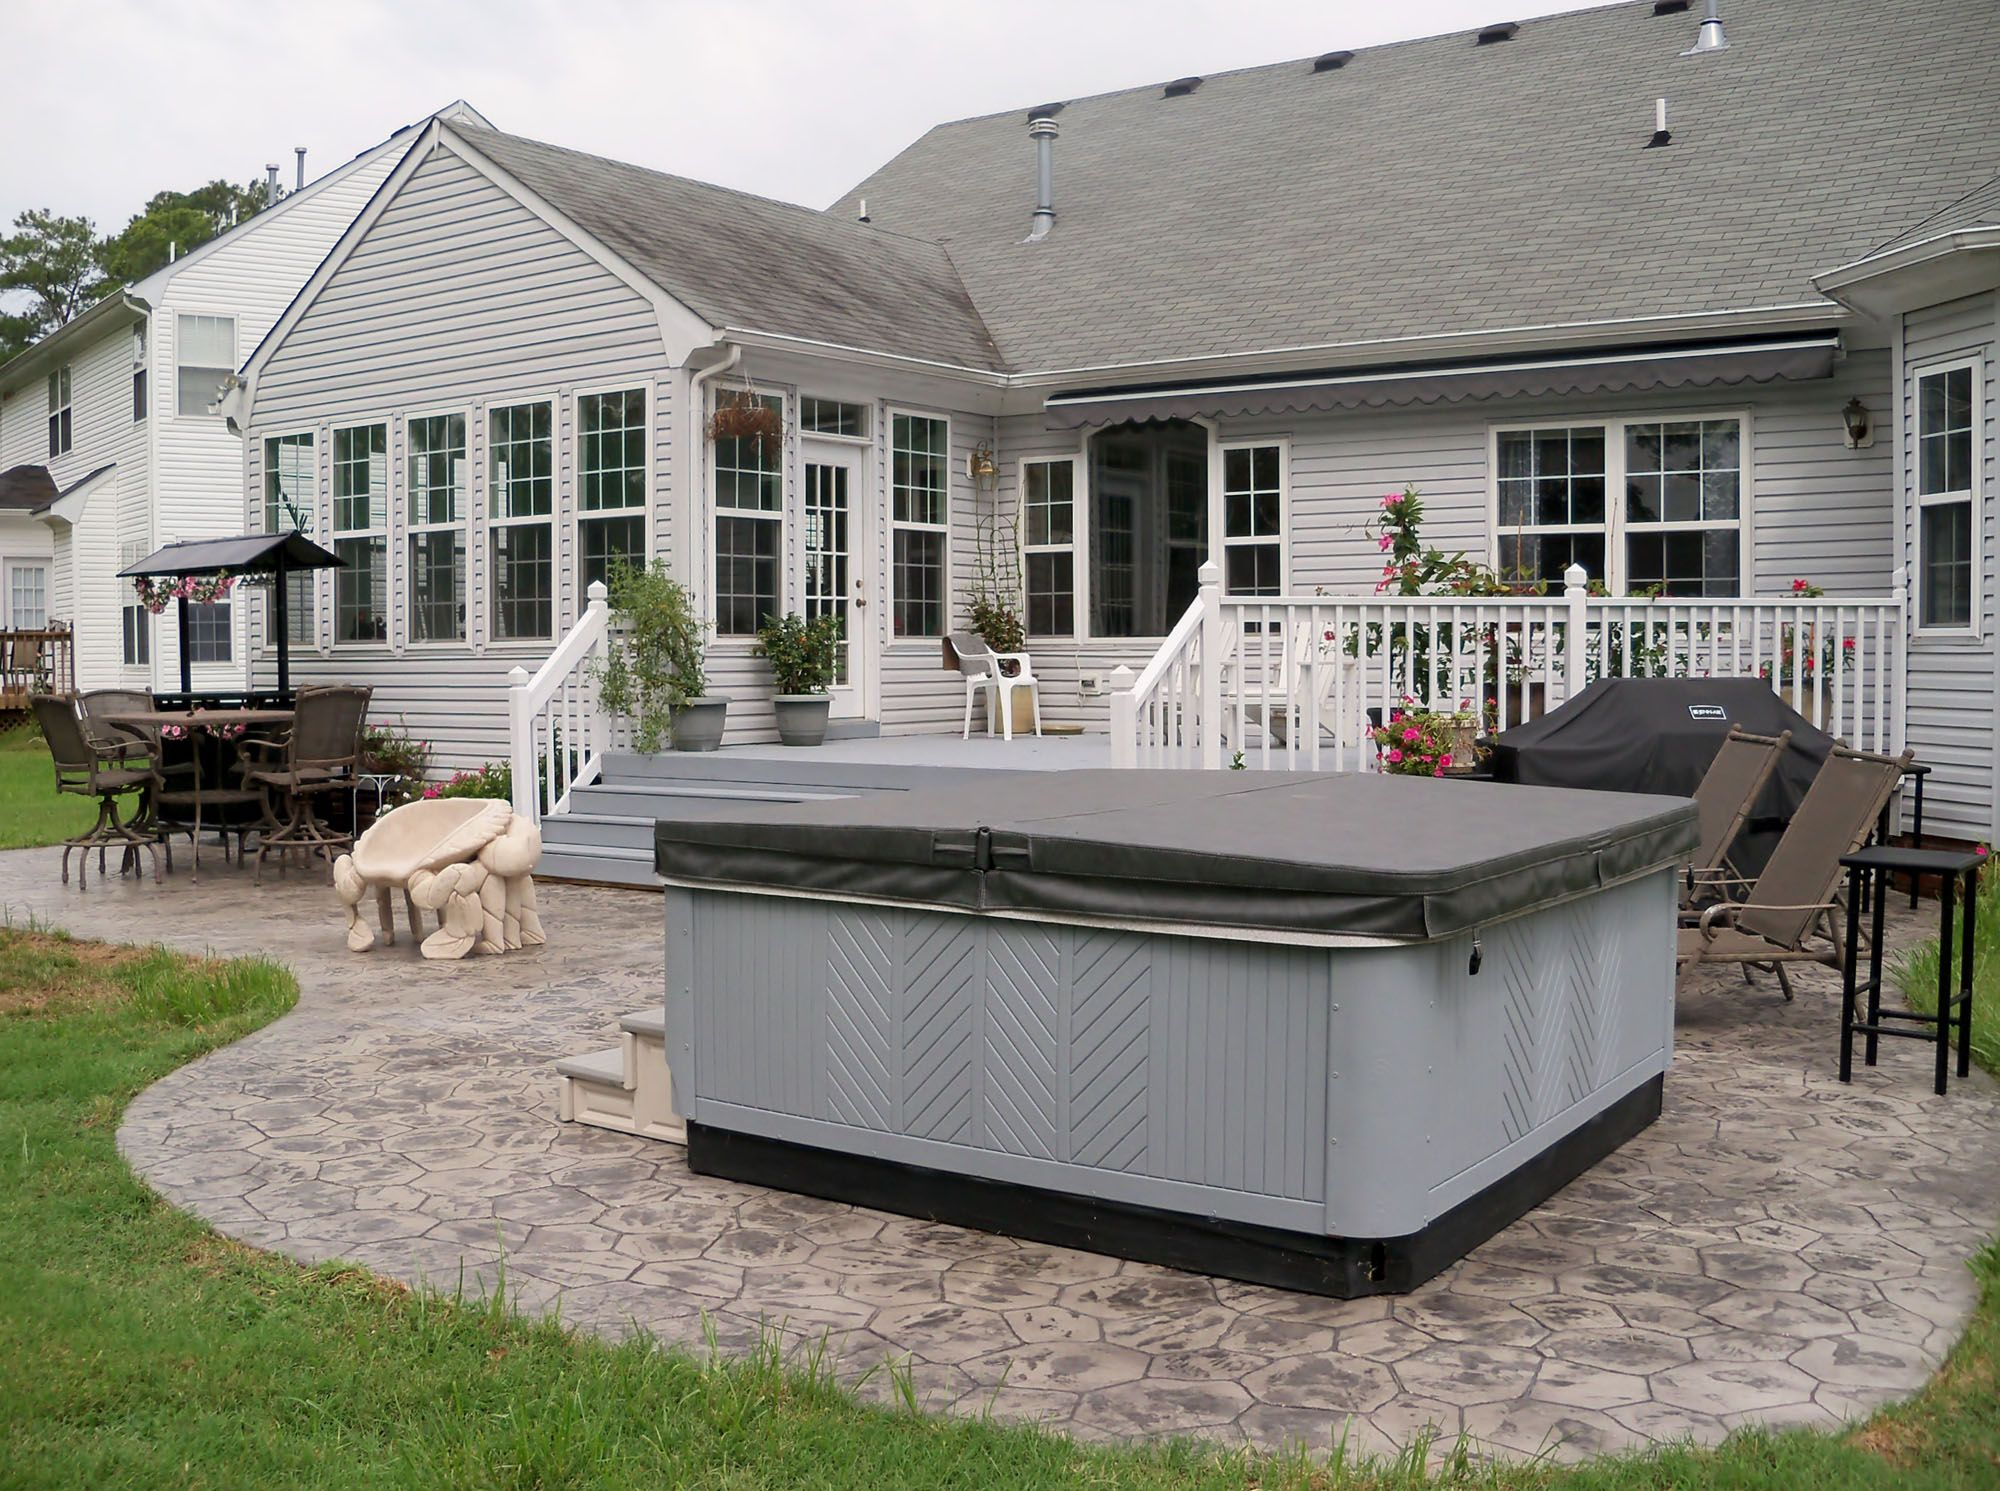 71 best hot tub images on pinterest | hot tubs, backyard ideas and ... - Hot Tub Patio Ideas